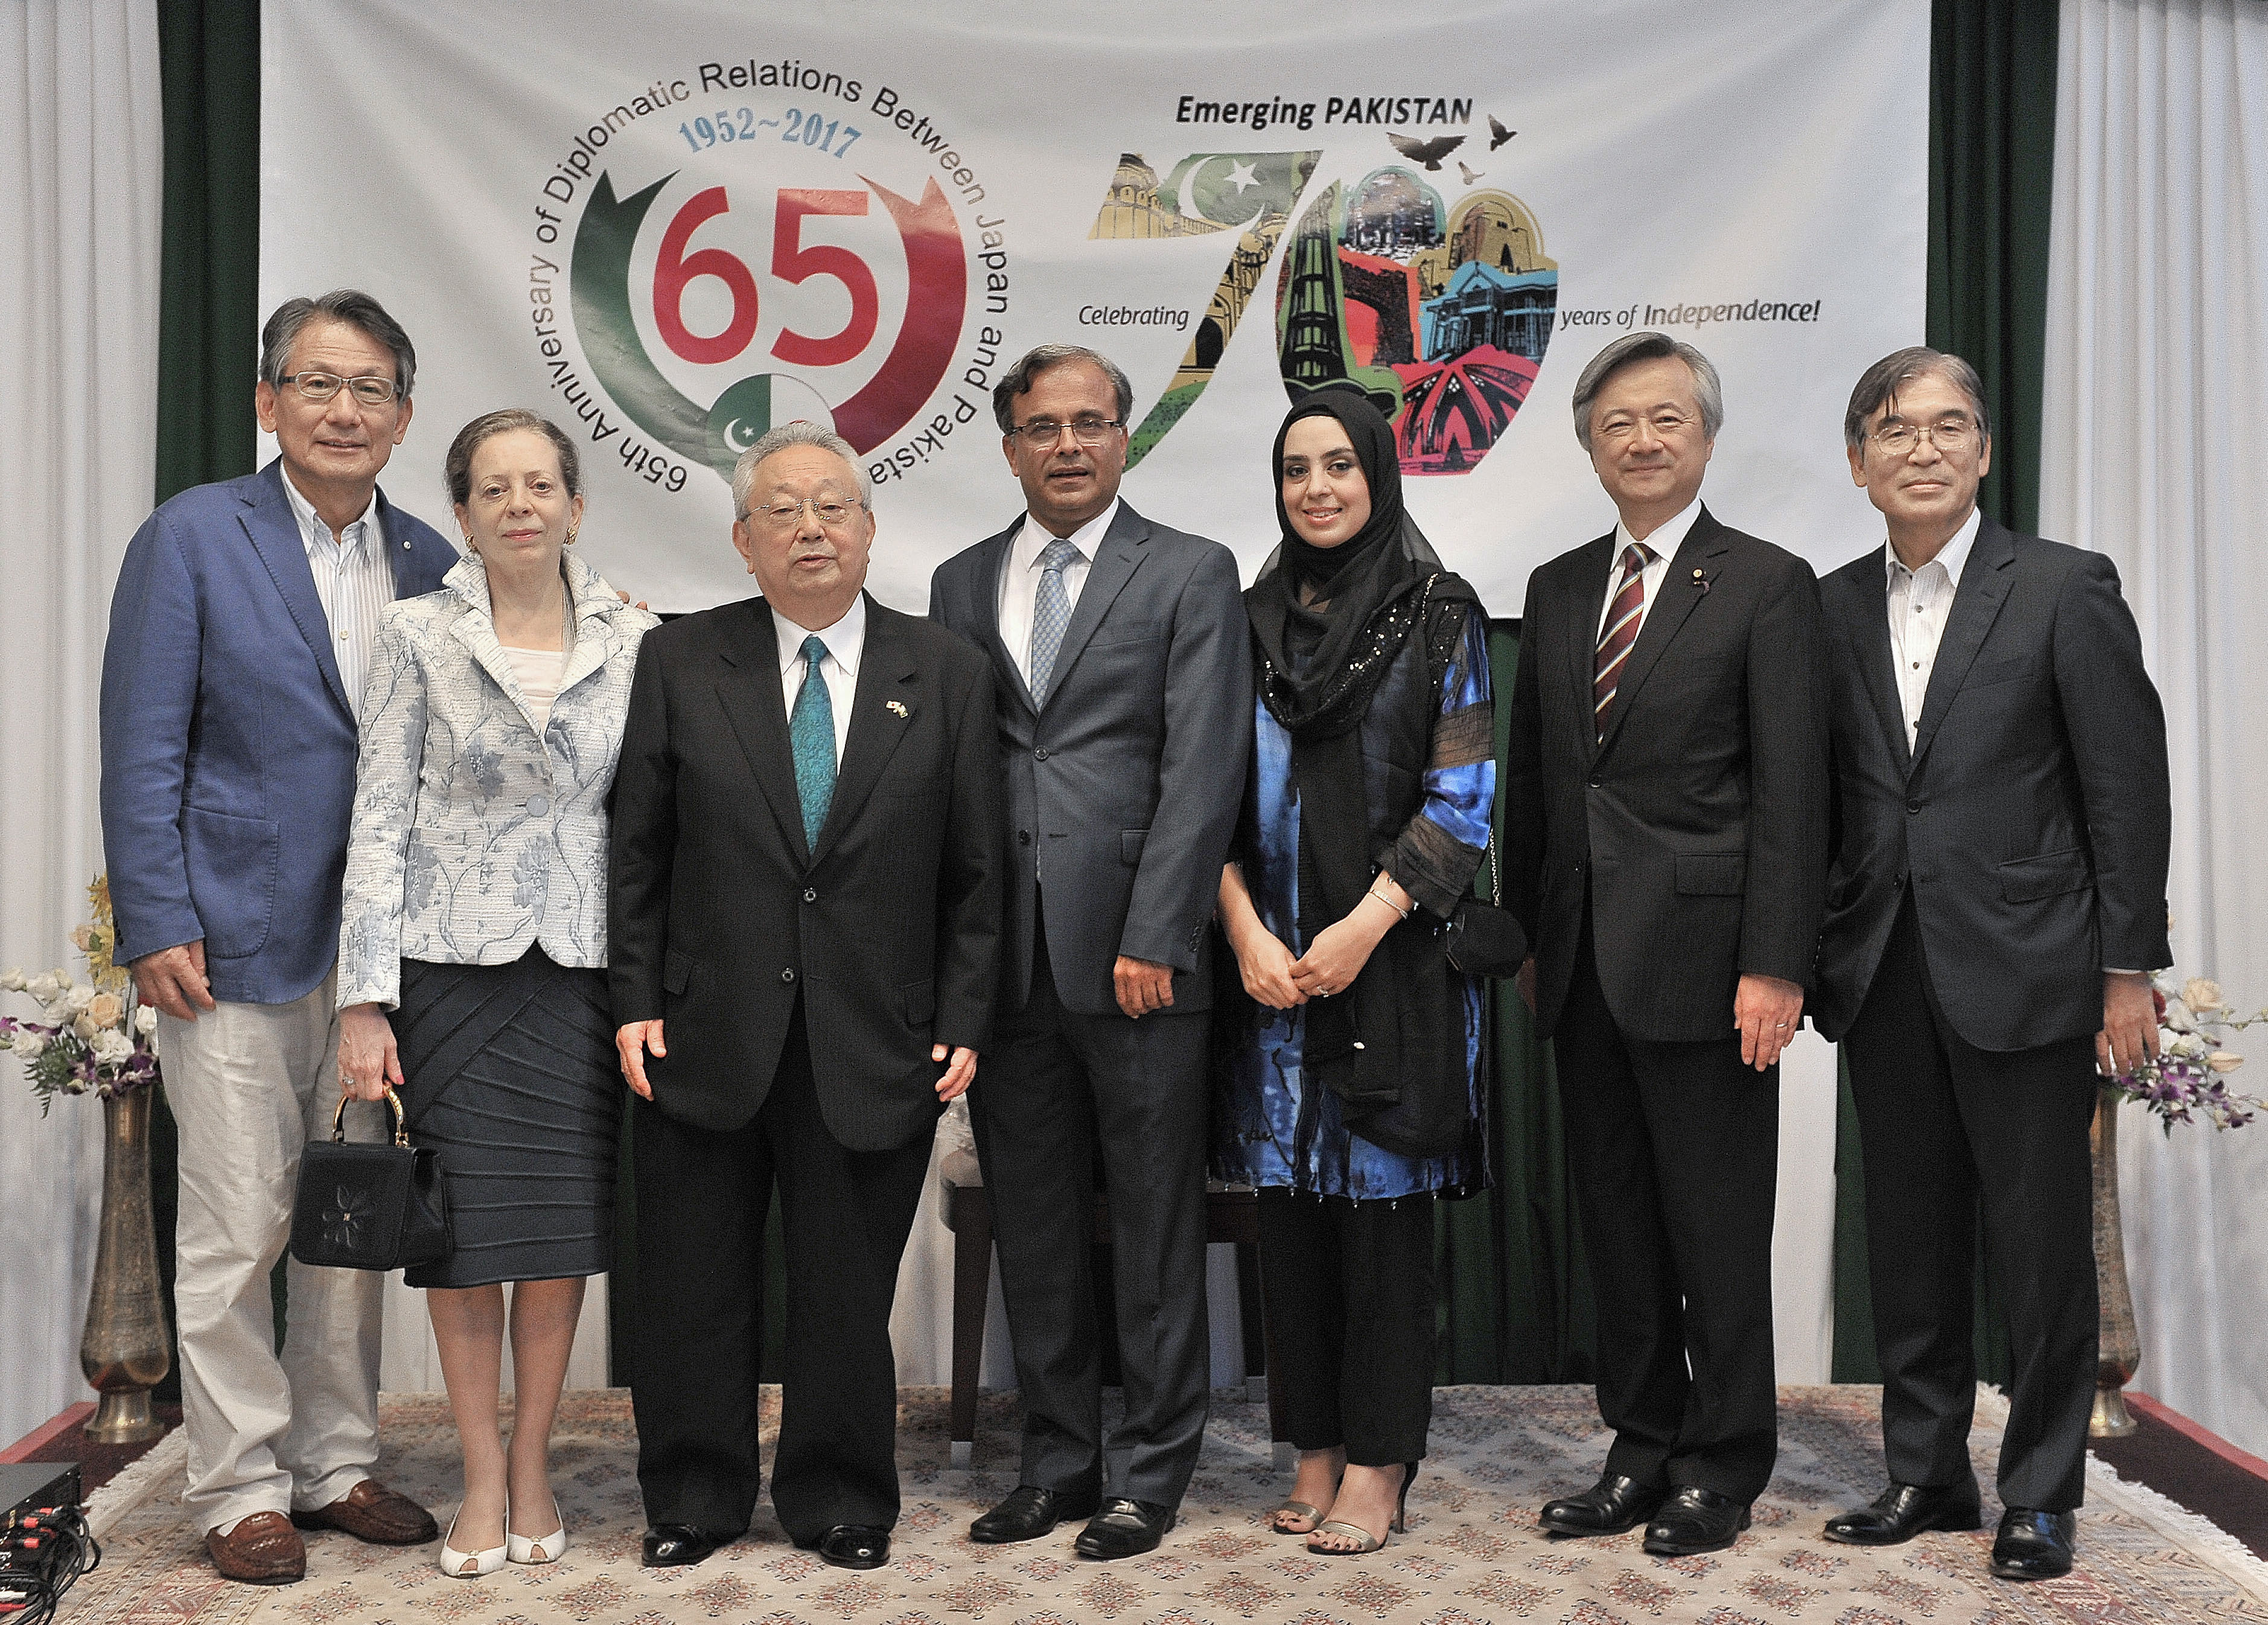 Pakistan Ambassador Asad Majeed Khan (center) and his wife, Zunaira Asad Khan (third from right) welcome (from left) former Ambassador to Pakistan Nobuaki Tanaka and his wife, Tanaka; Shun Imaizumi, president of the Japan-Pakistan Association; Lower House lawmaker Shinkun Haku; and former Ambassador to Pakistan Seiji Kojima during an event that was held at the Pakistan Embassy in Tokyo on Aug. 18 to celebrate the 65th anniversary of Pakistan-Japan diplomatic relations. | YOSHIAKI MIURA